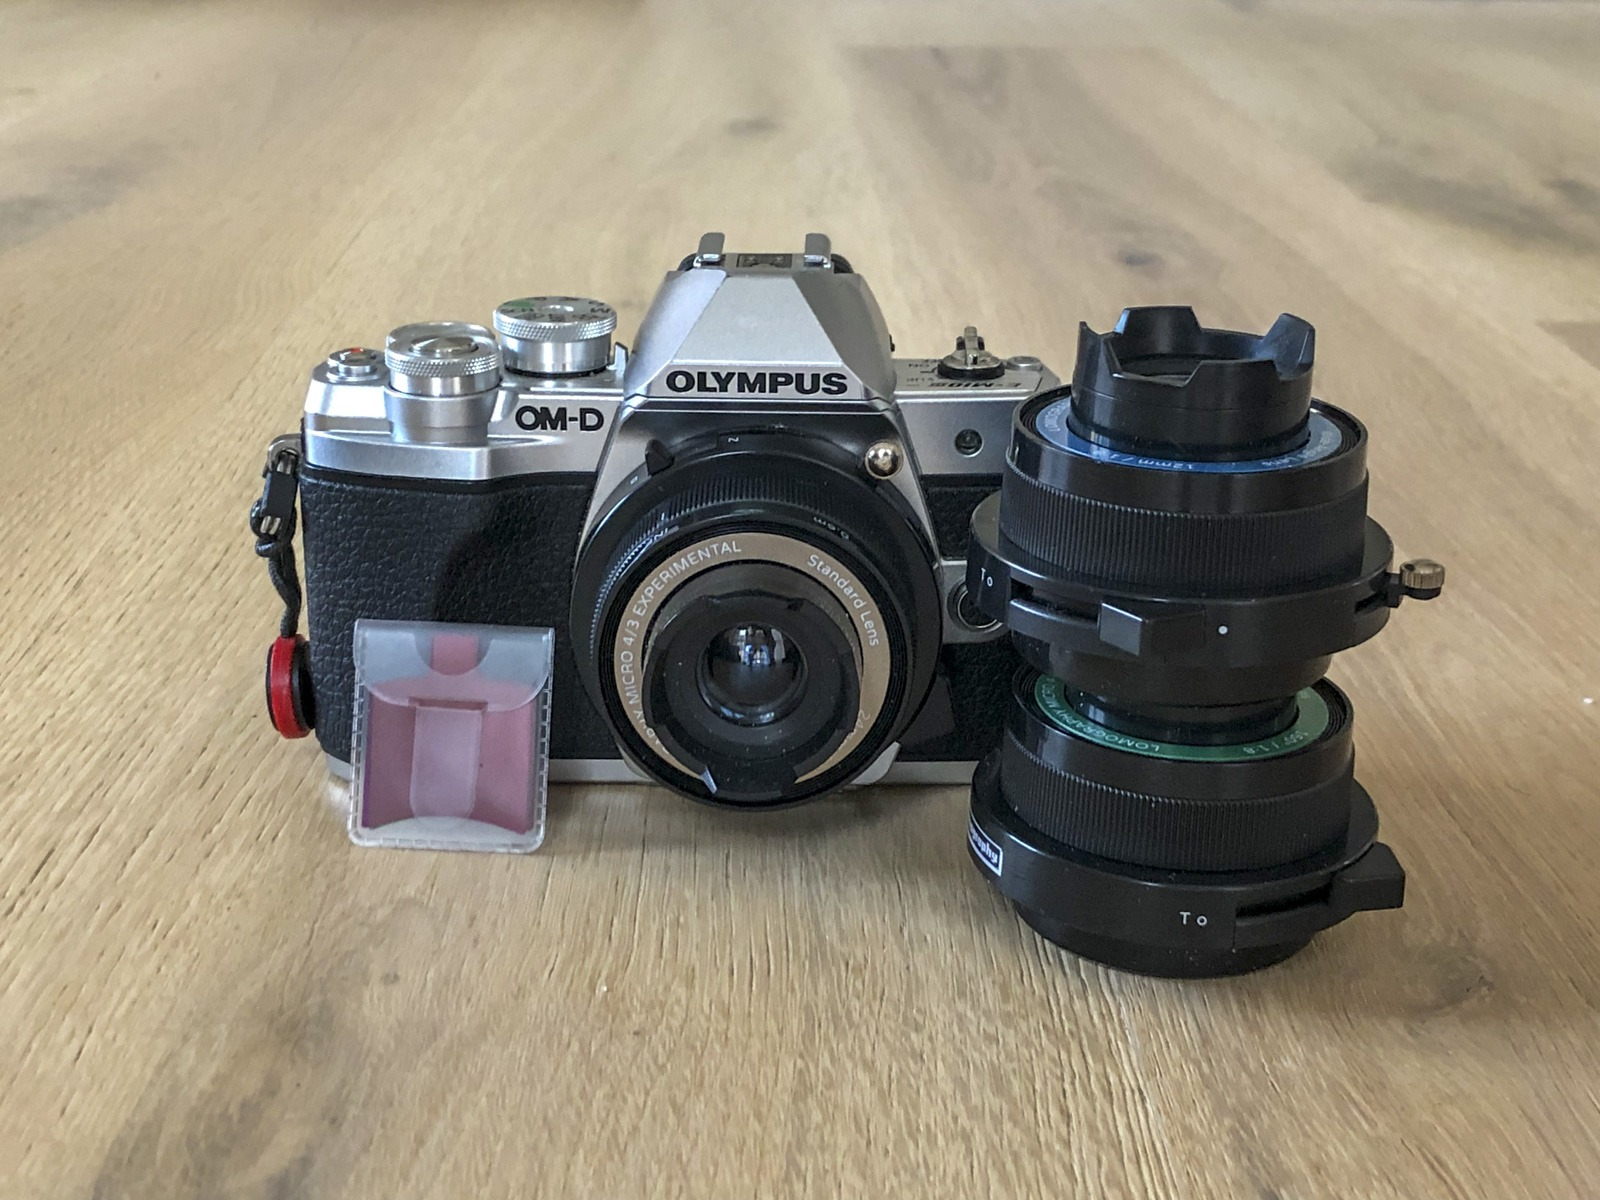 Lomography experimental kit for Micro Four Thirds on Olympus OM-D EM-10 Mark iii